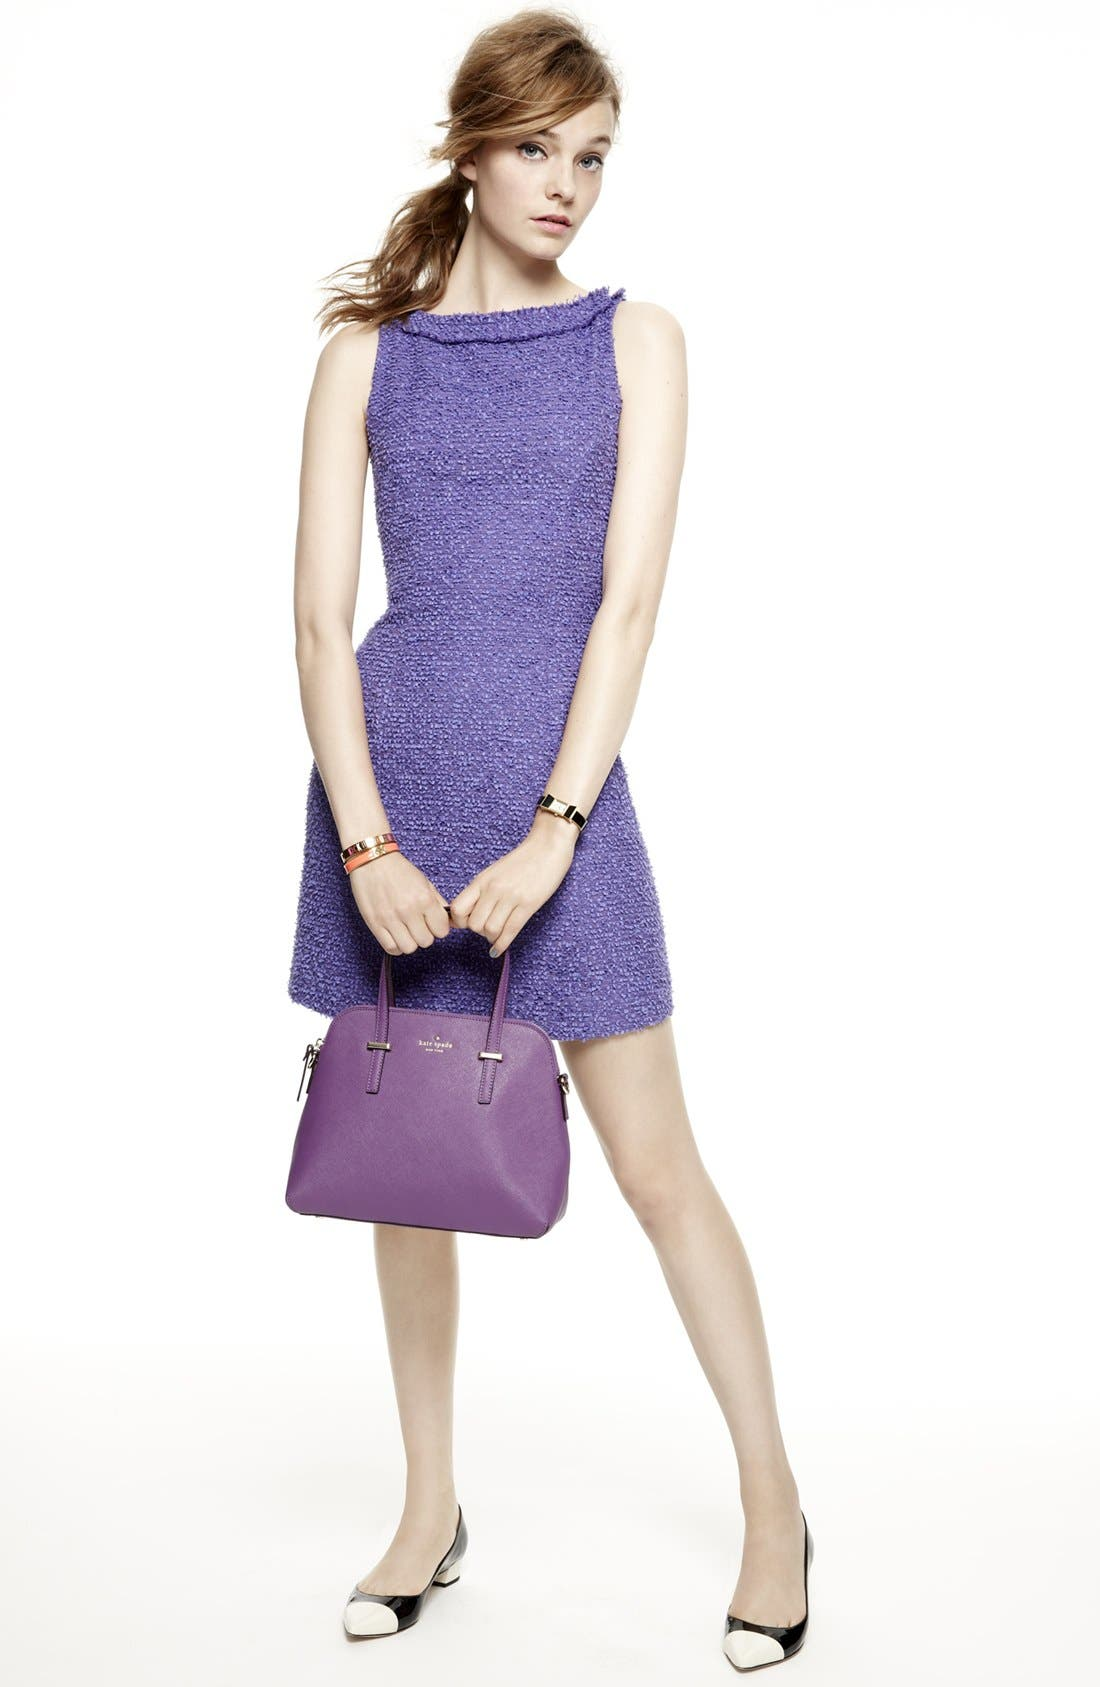 Main Image - kate spade new york a-line dress & accessories